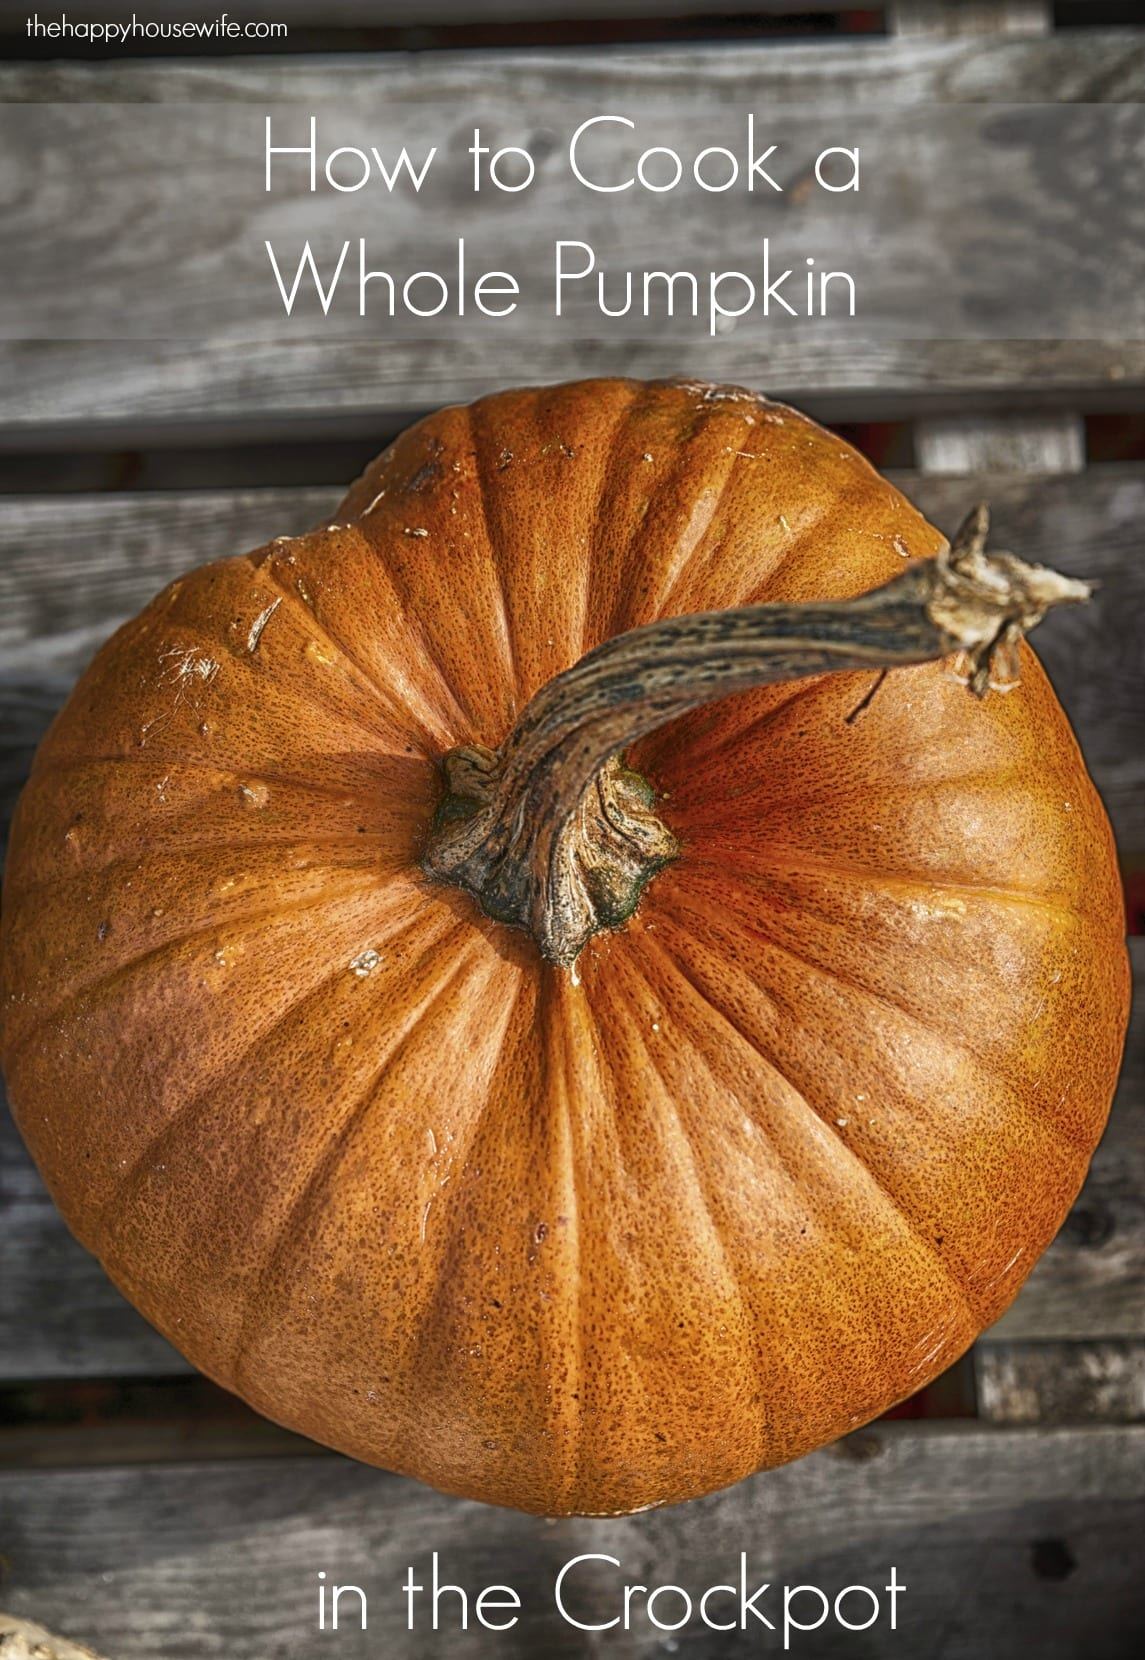 How to cook a whole pumpkin in a crock pot. The easiest foolproof method to cook a pumpkin.